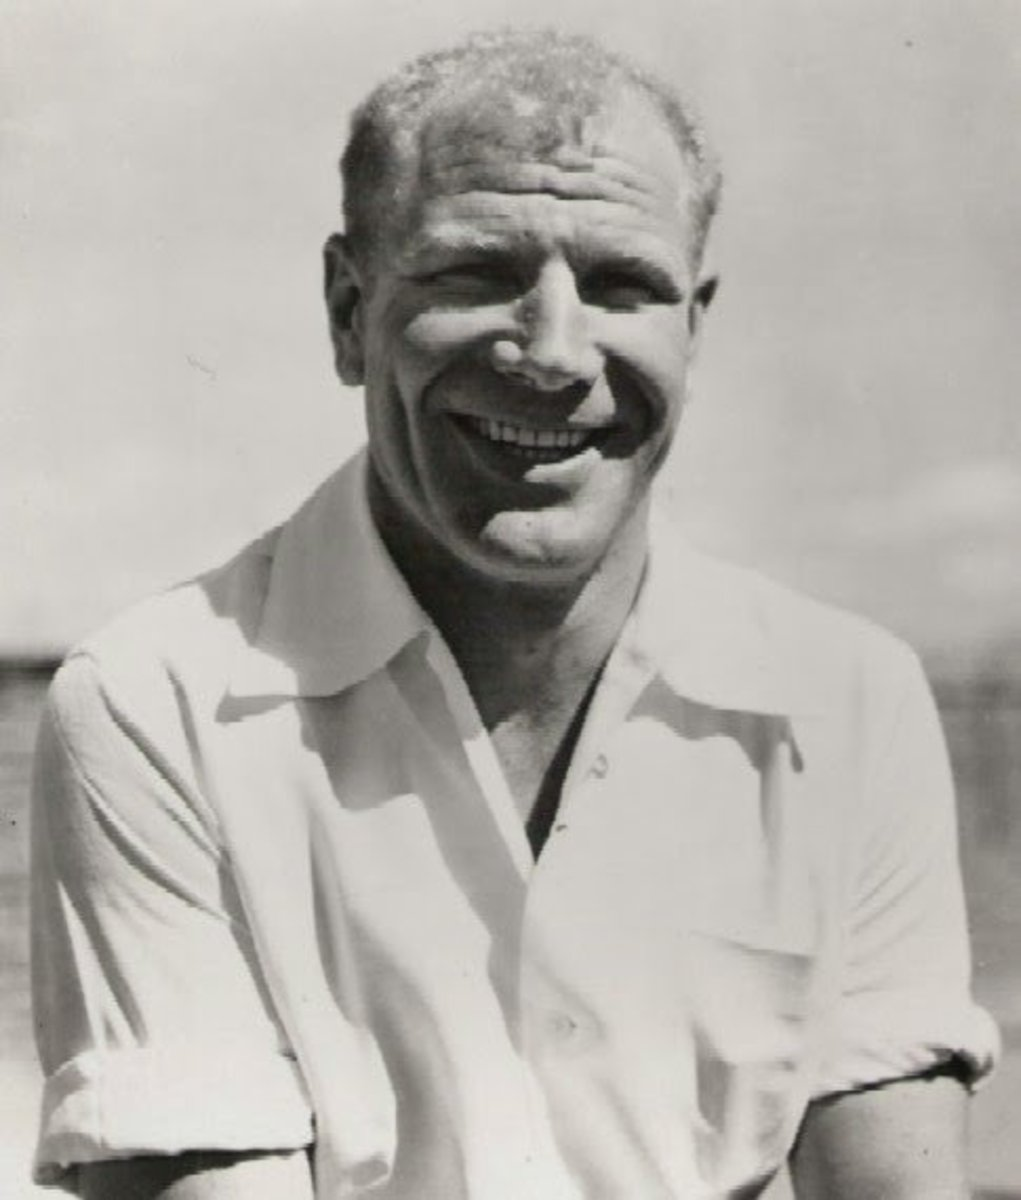 St. Louis Browns owner Bill Veeck